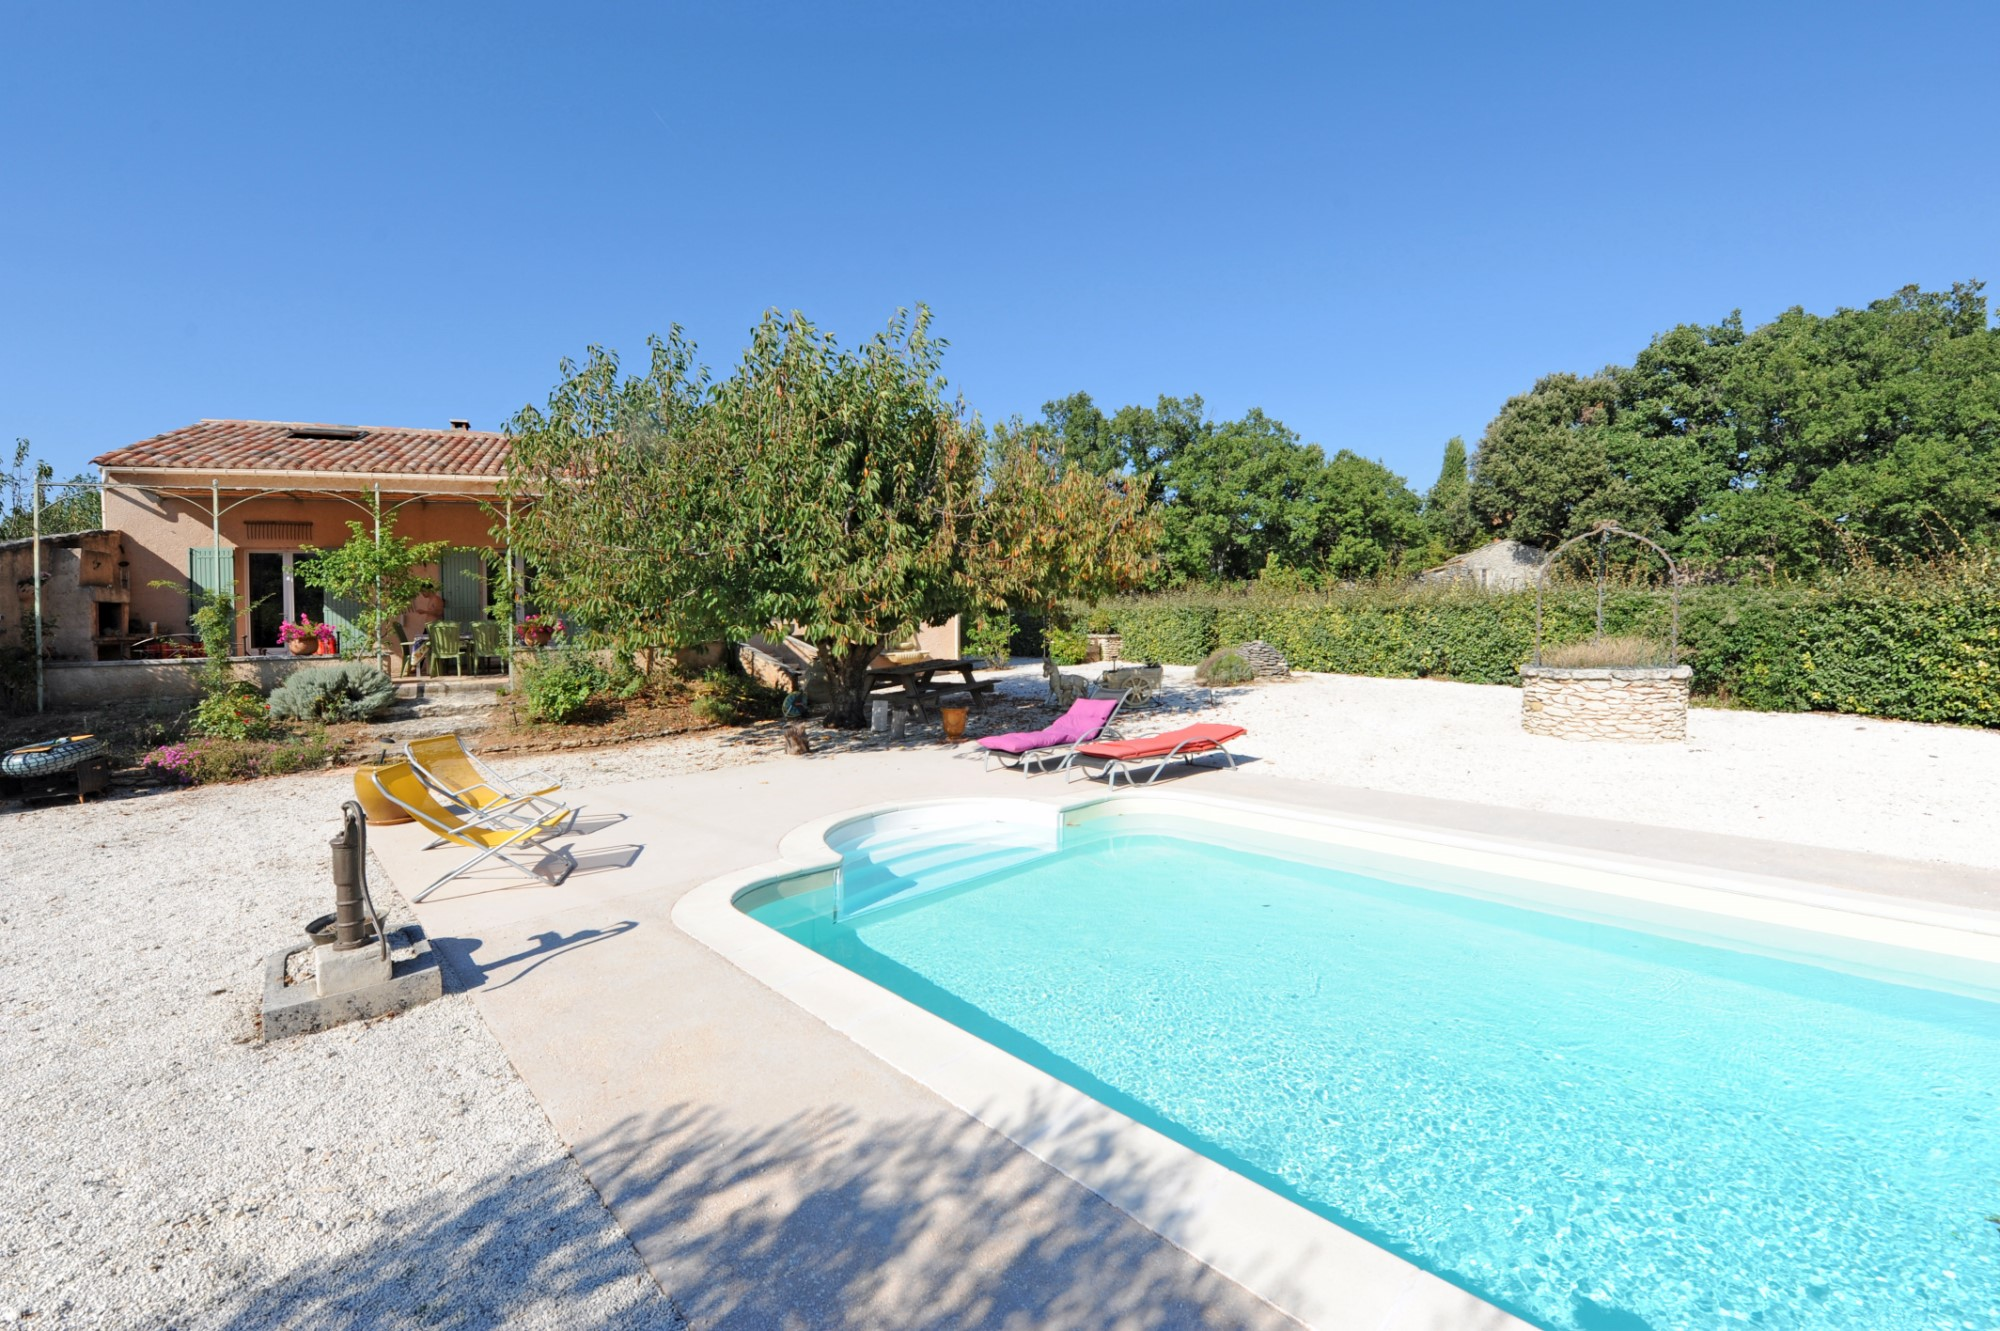 Camping luberon avec piscine camping luberon bergerie for Camping montagne avec piscine